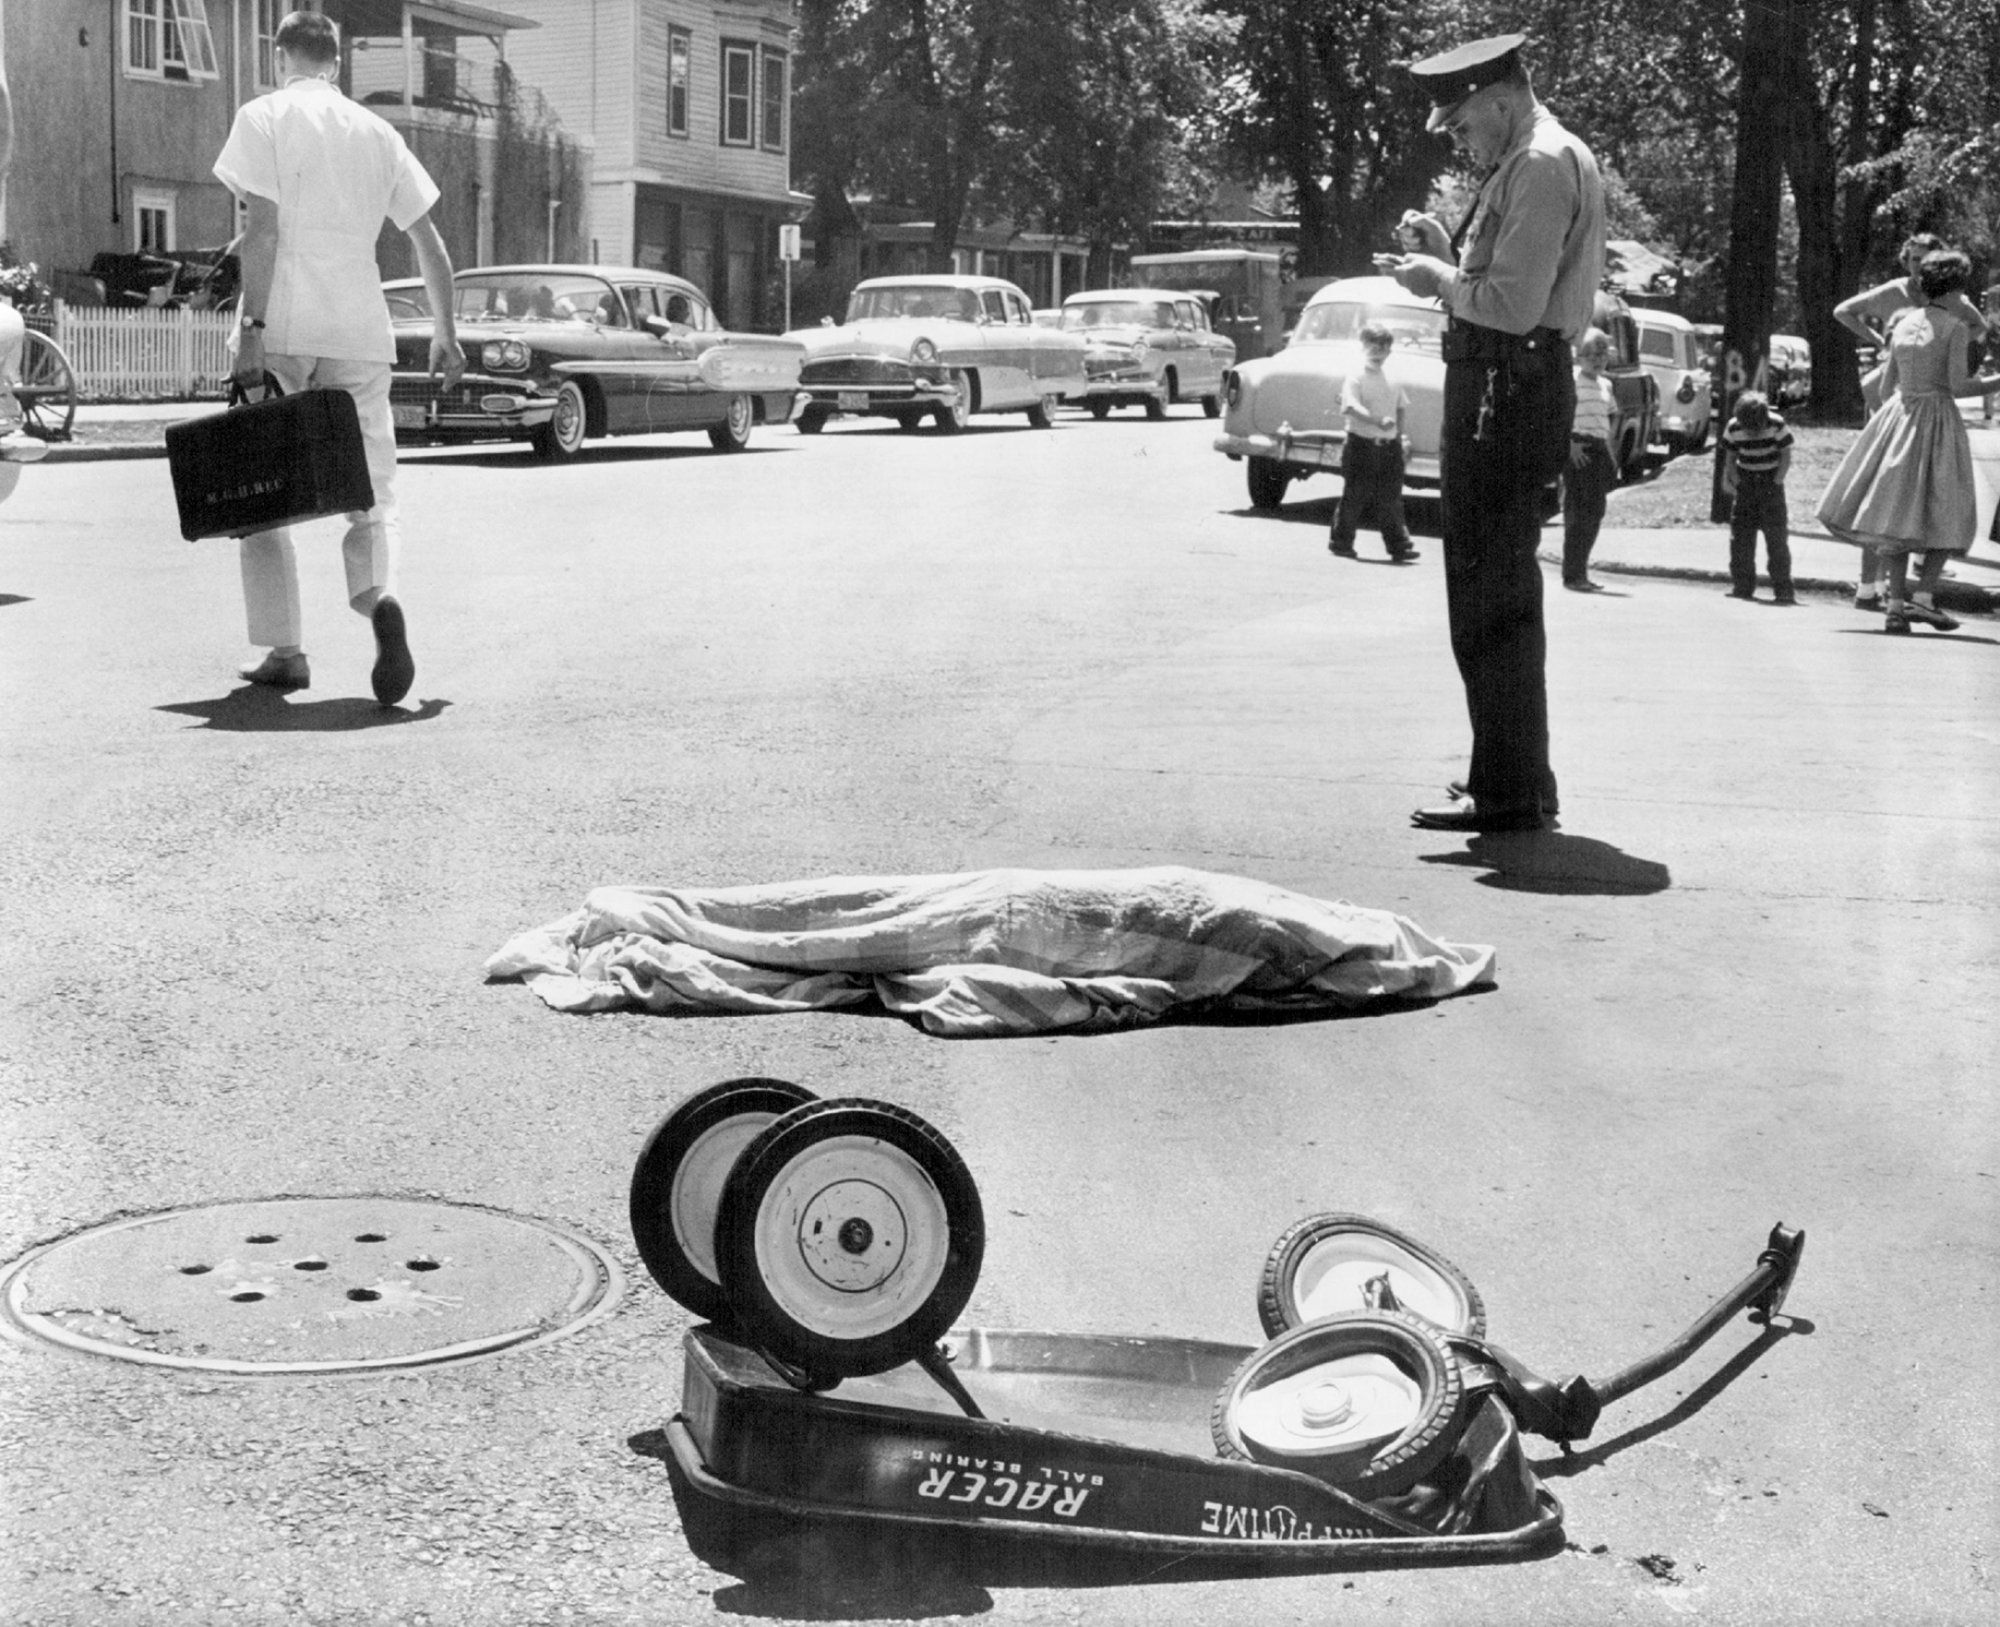 1959 William Seaman Of Minneapolis Star For His Dramatic Photograph The Sudden Death A Child In Street